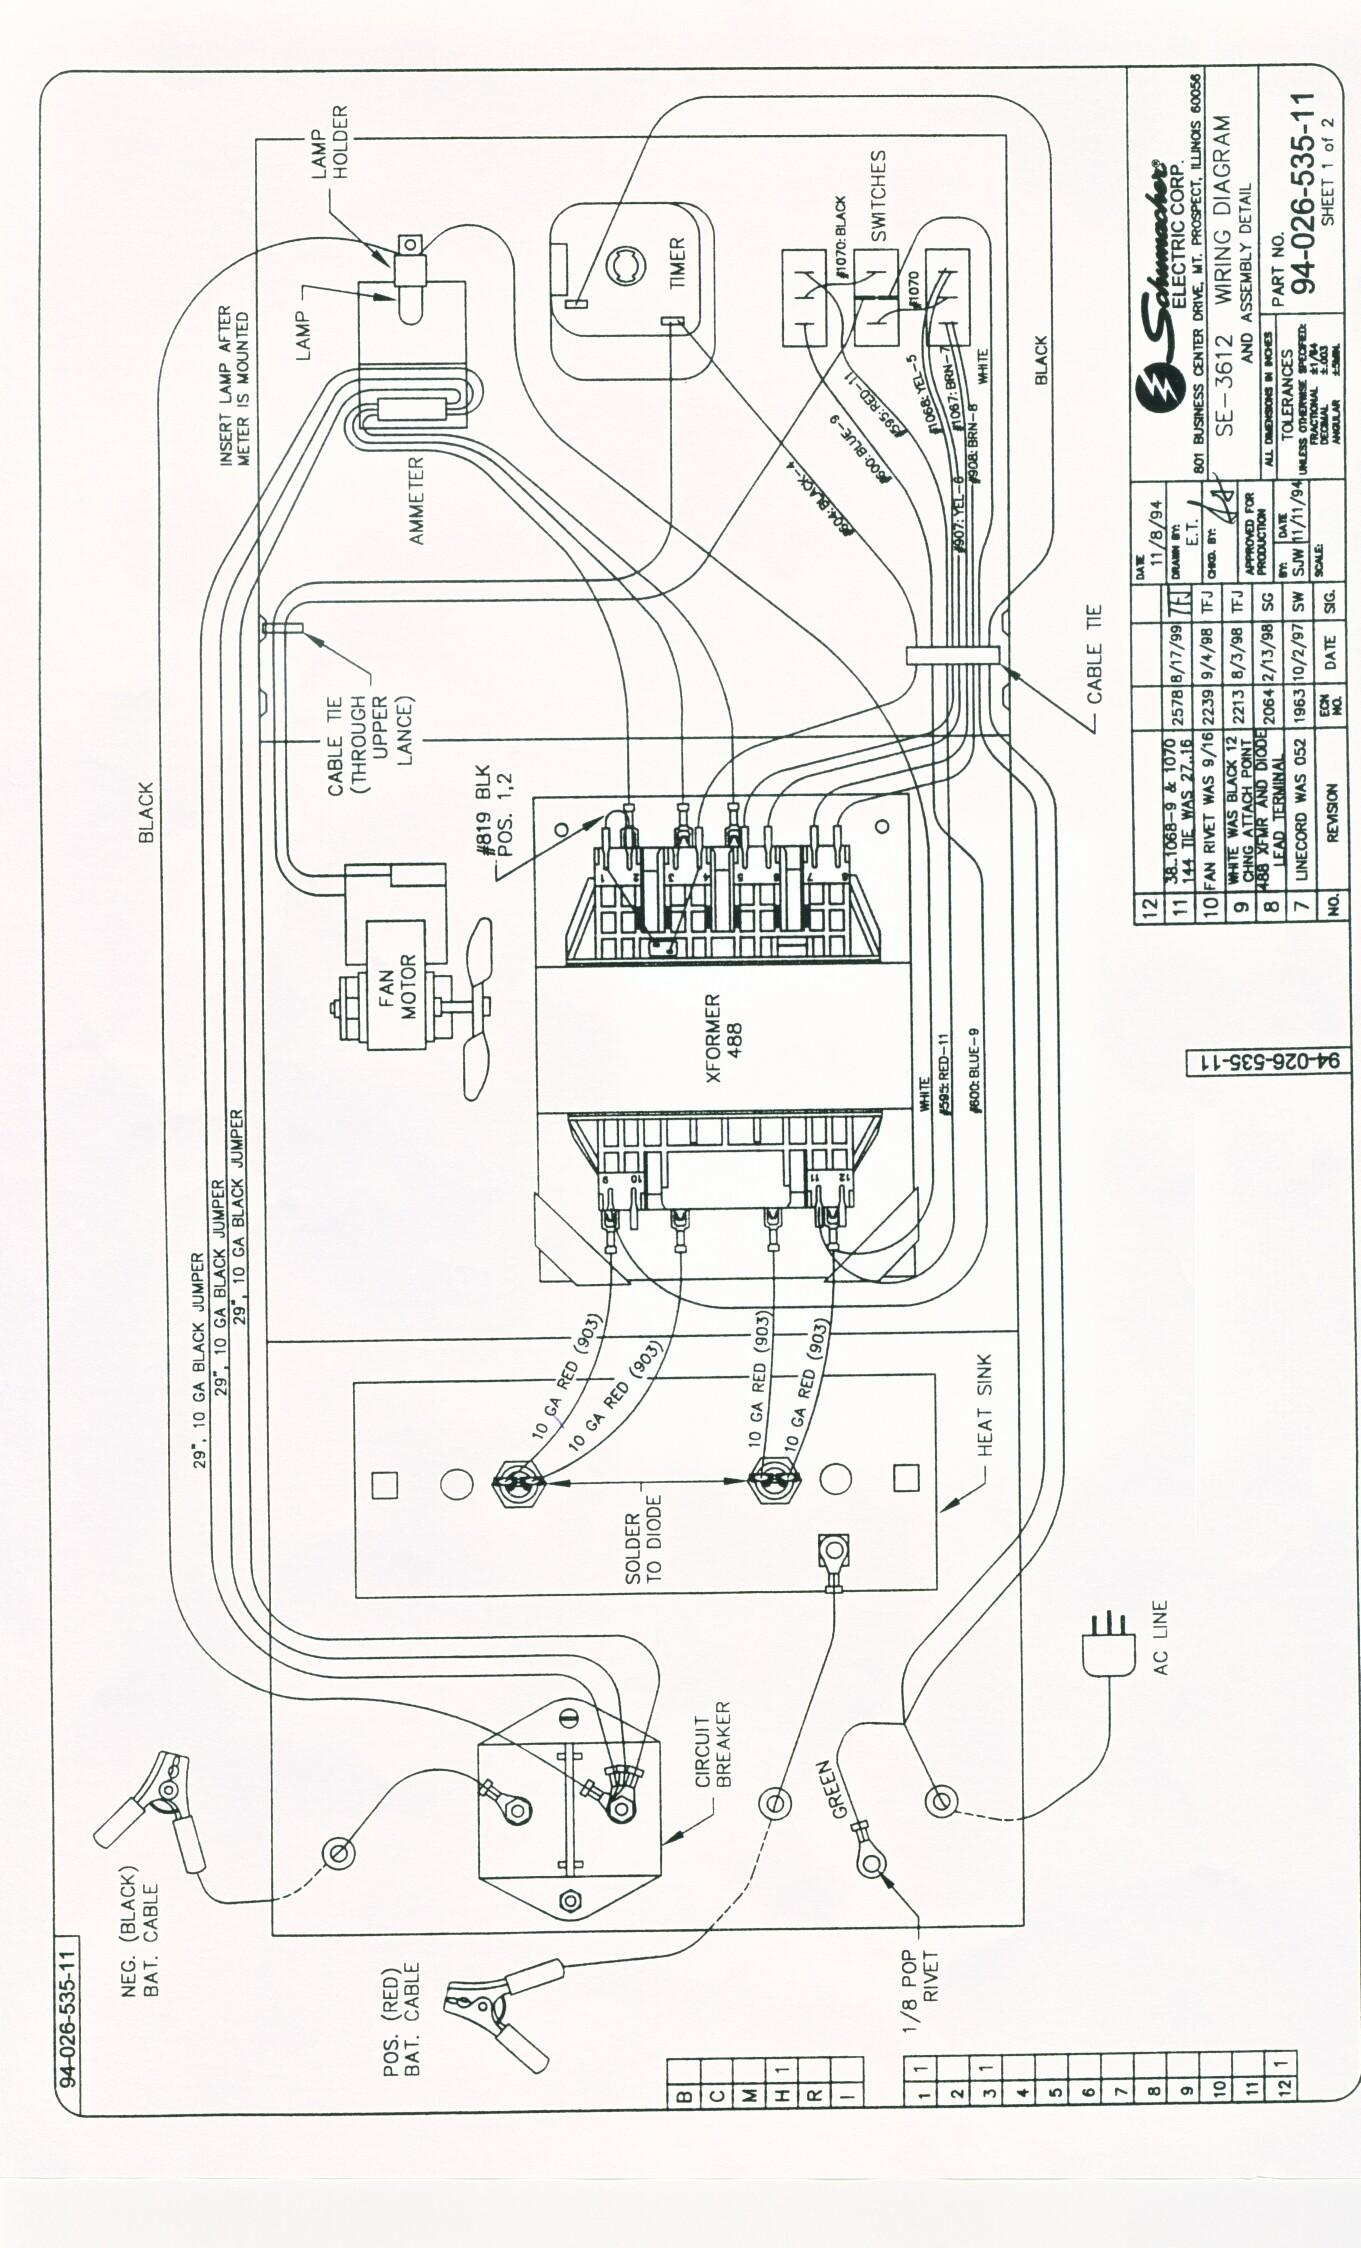 Schumacher Battery Charger Circuit Schematic on acura repair manual